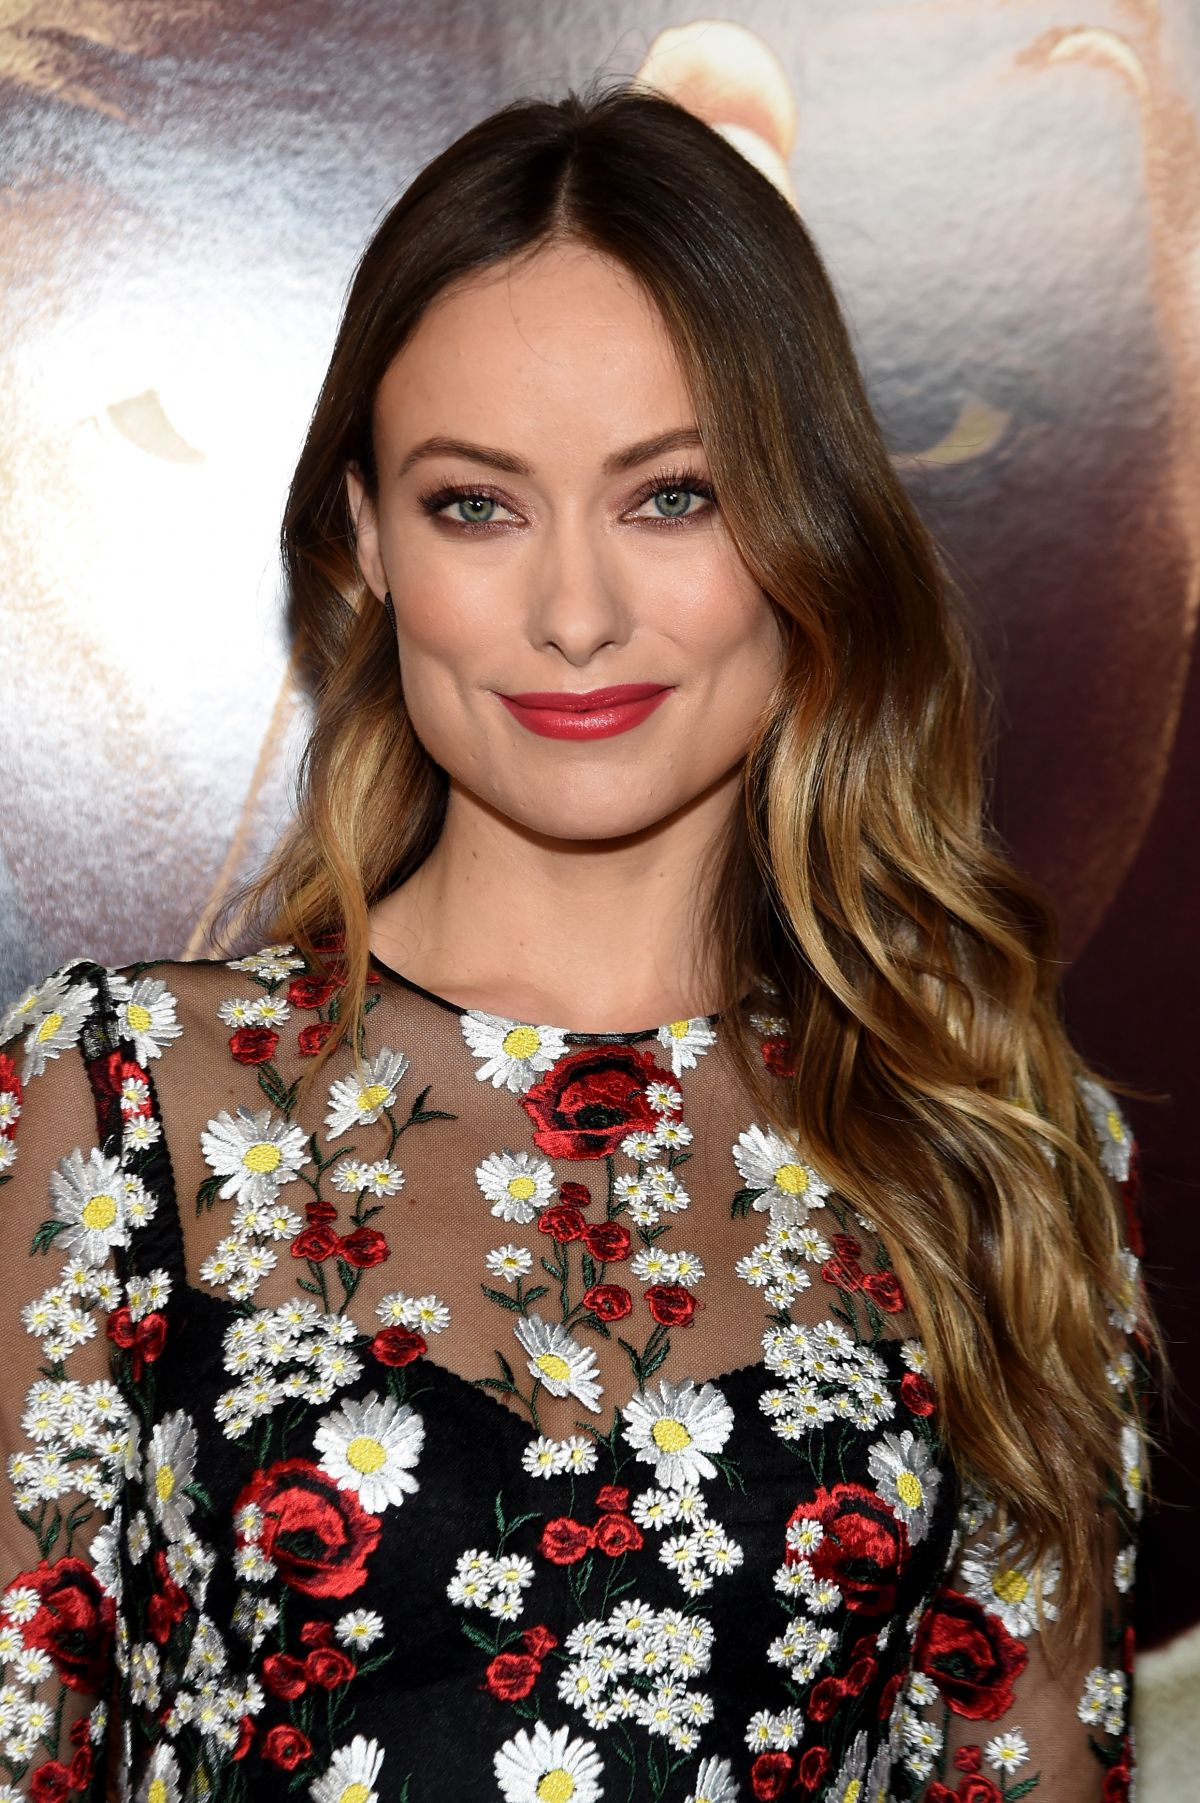 Olivia Wilde Profile And New Pictures 2013: OLIVIA WILDE At Race Screening In New York 02/17/2016